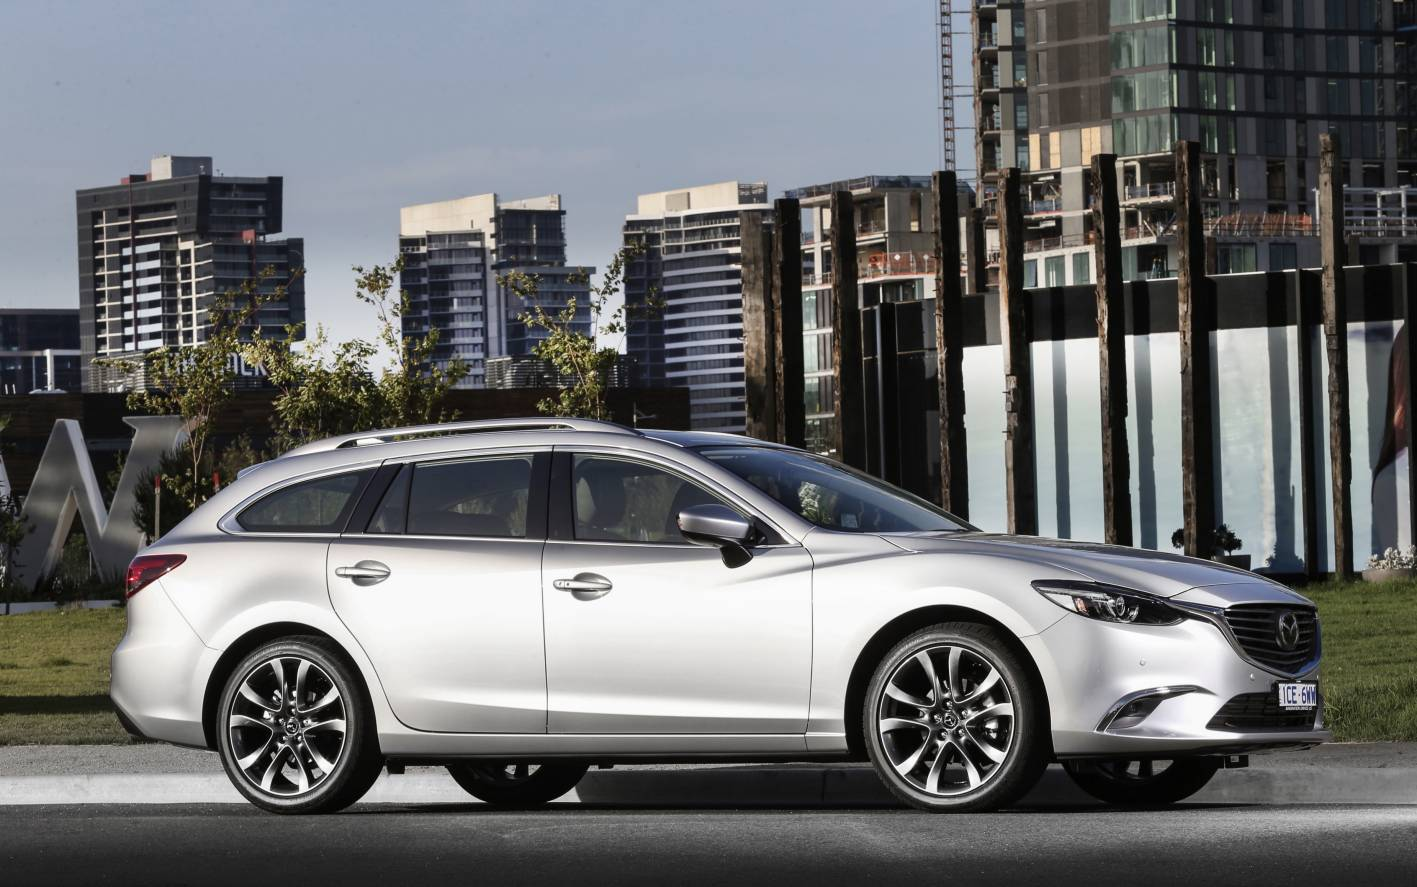 For many buyers a conventional station wagon like the Mazda6 (above) would make more objective sense